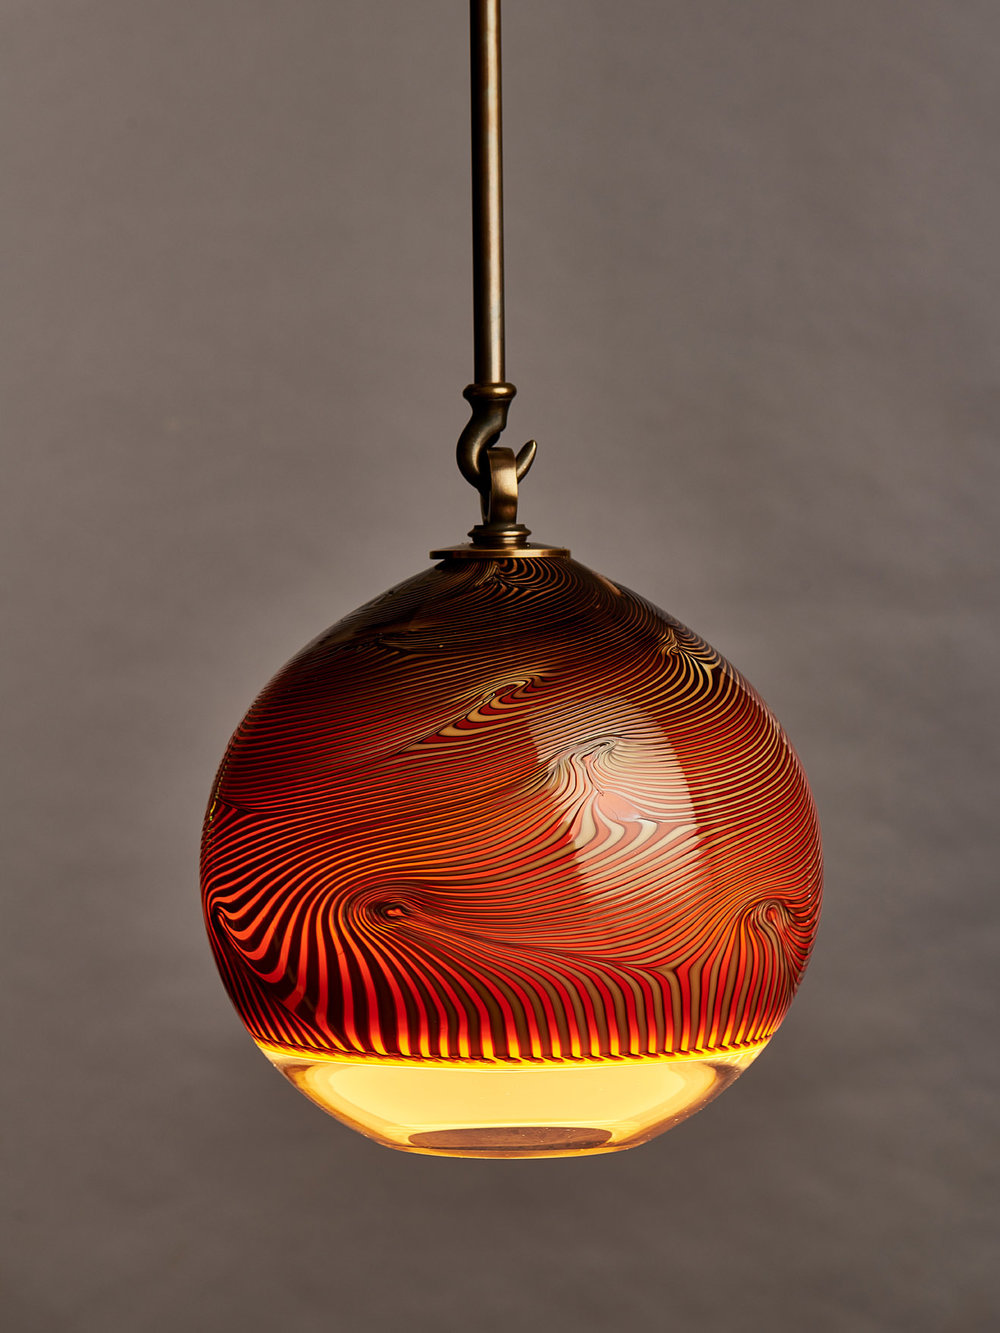 mantis wood grain globe s.jpg